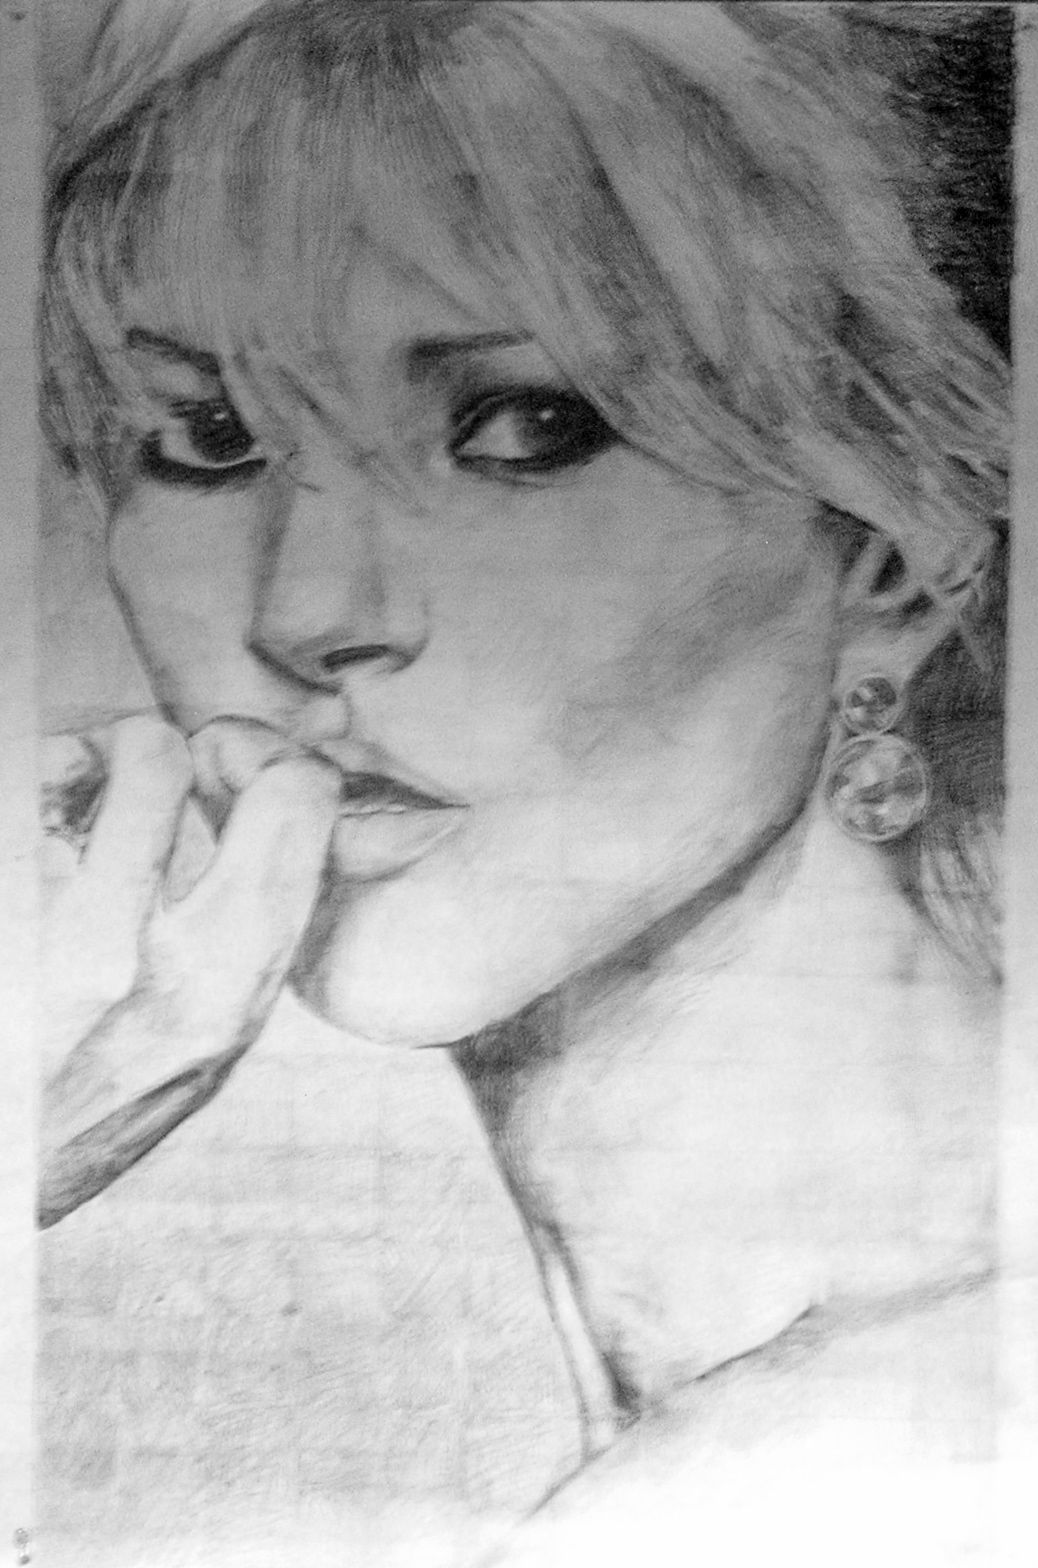 From an art assignment, a large sketch of lovely Kate Moss ...